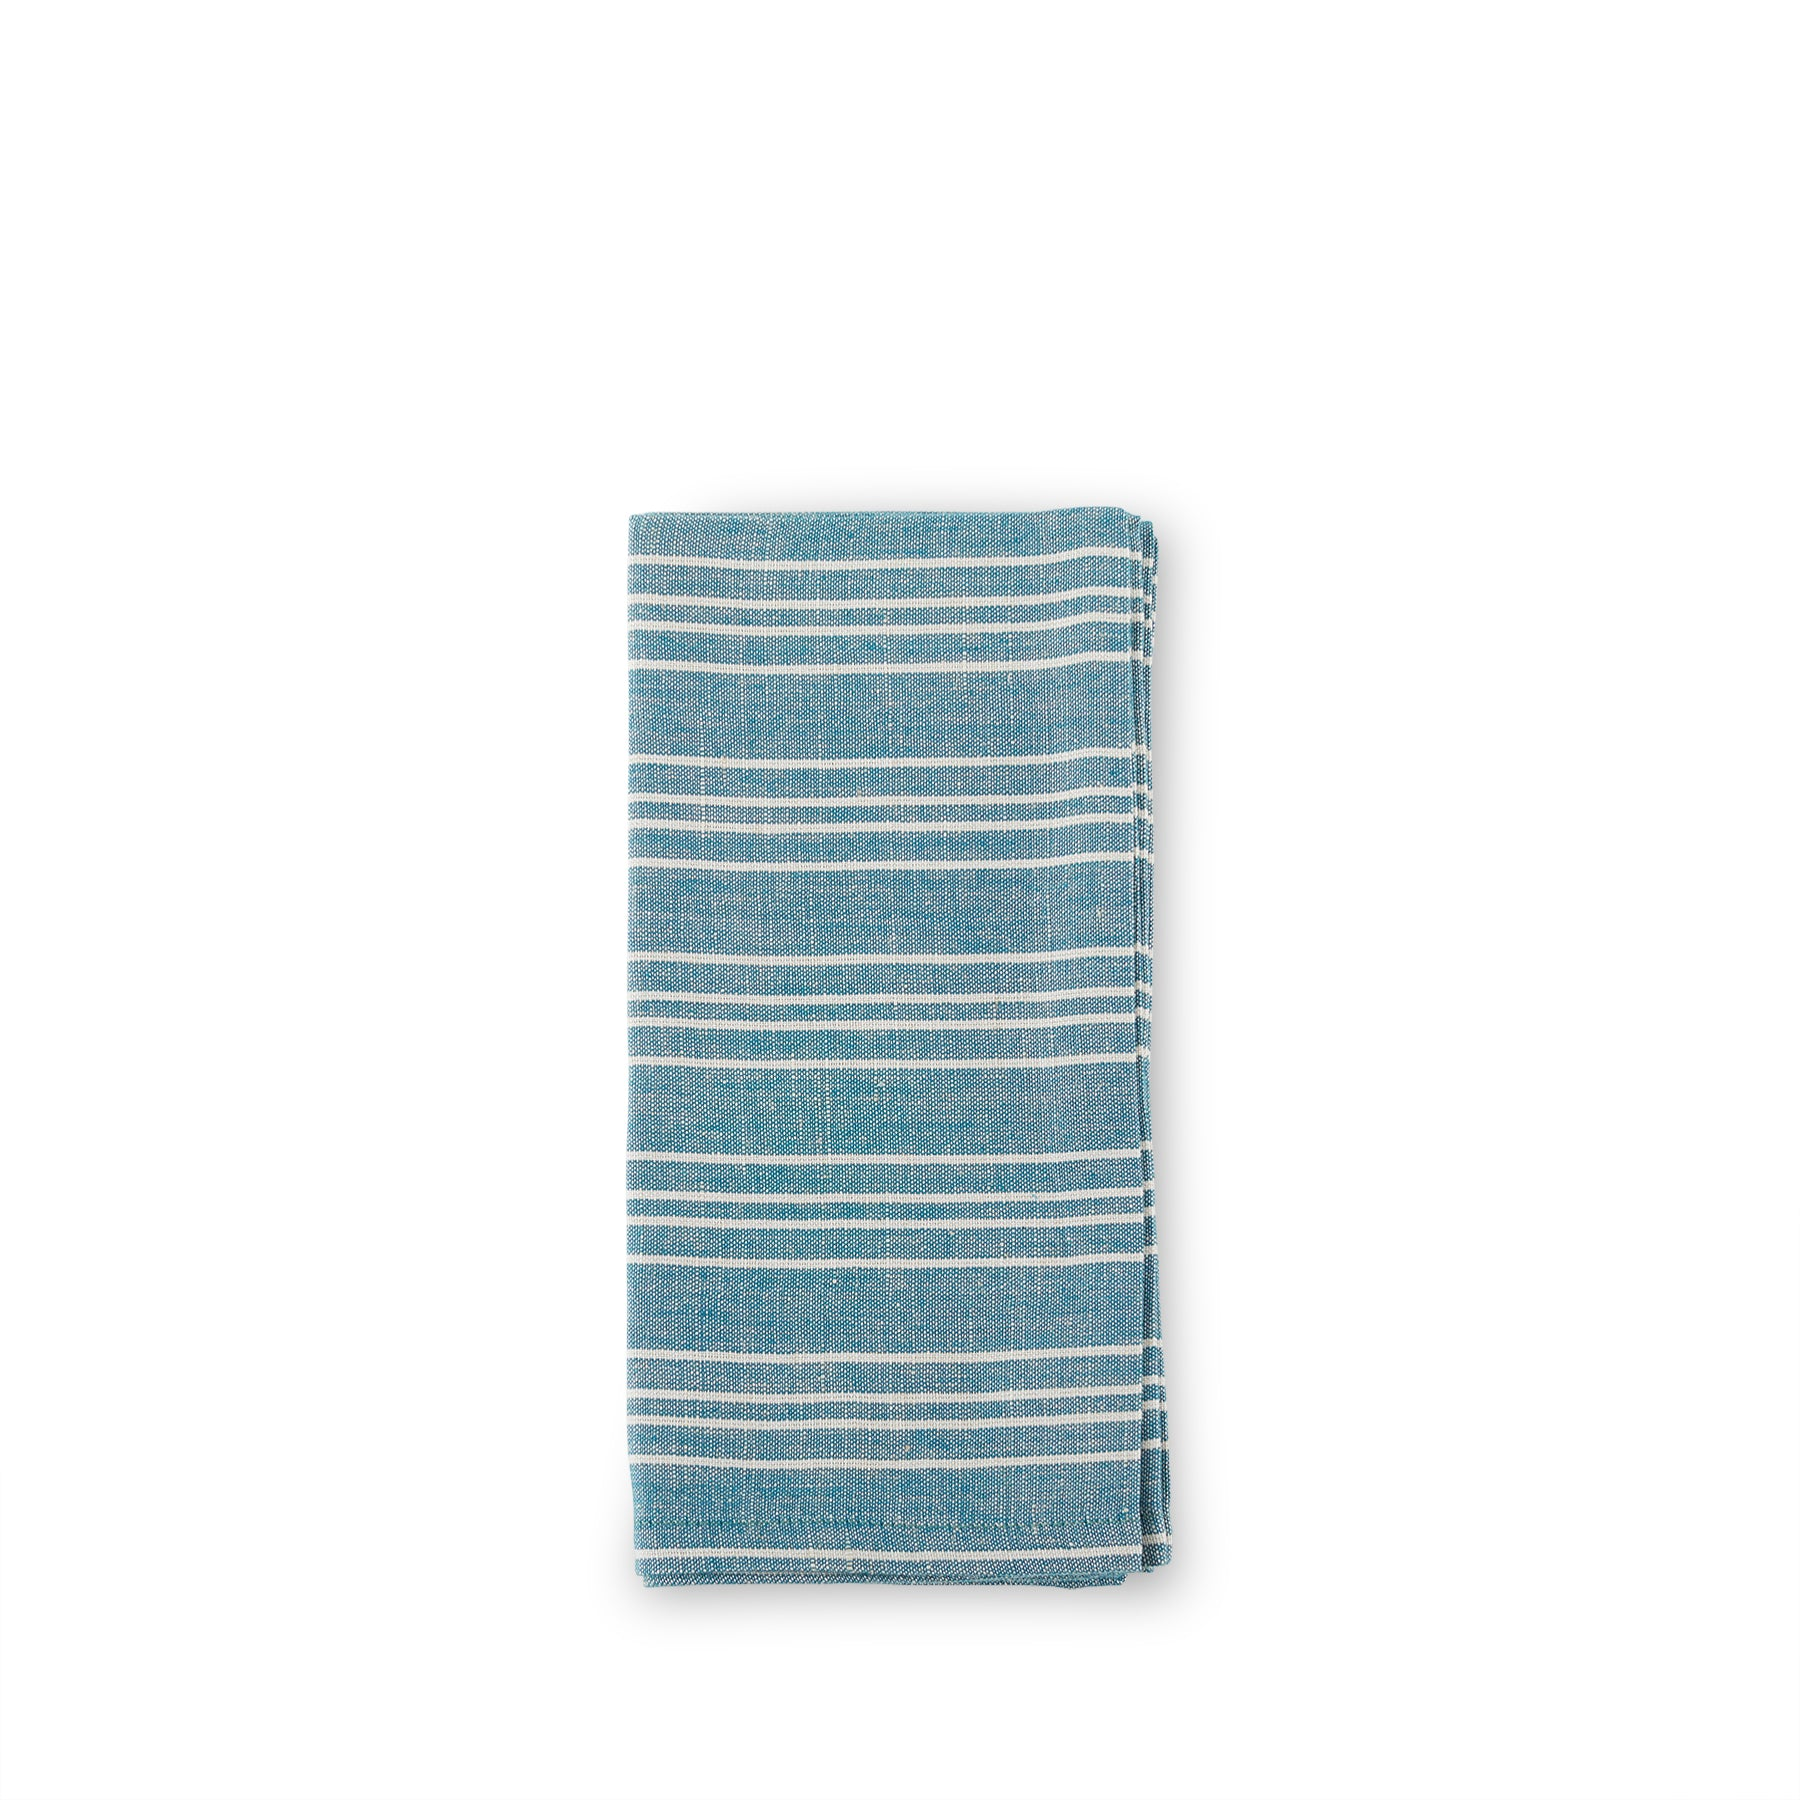 Cotton Linen Small Ticking Stripe Napkins in Teal (Set of 4) Zoom Image 1